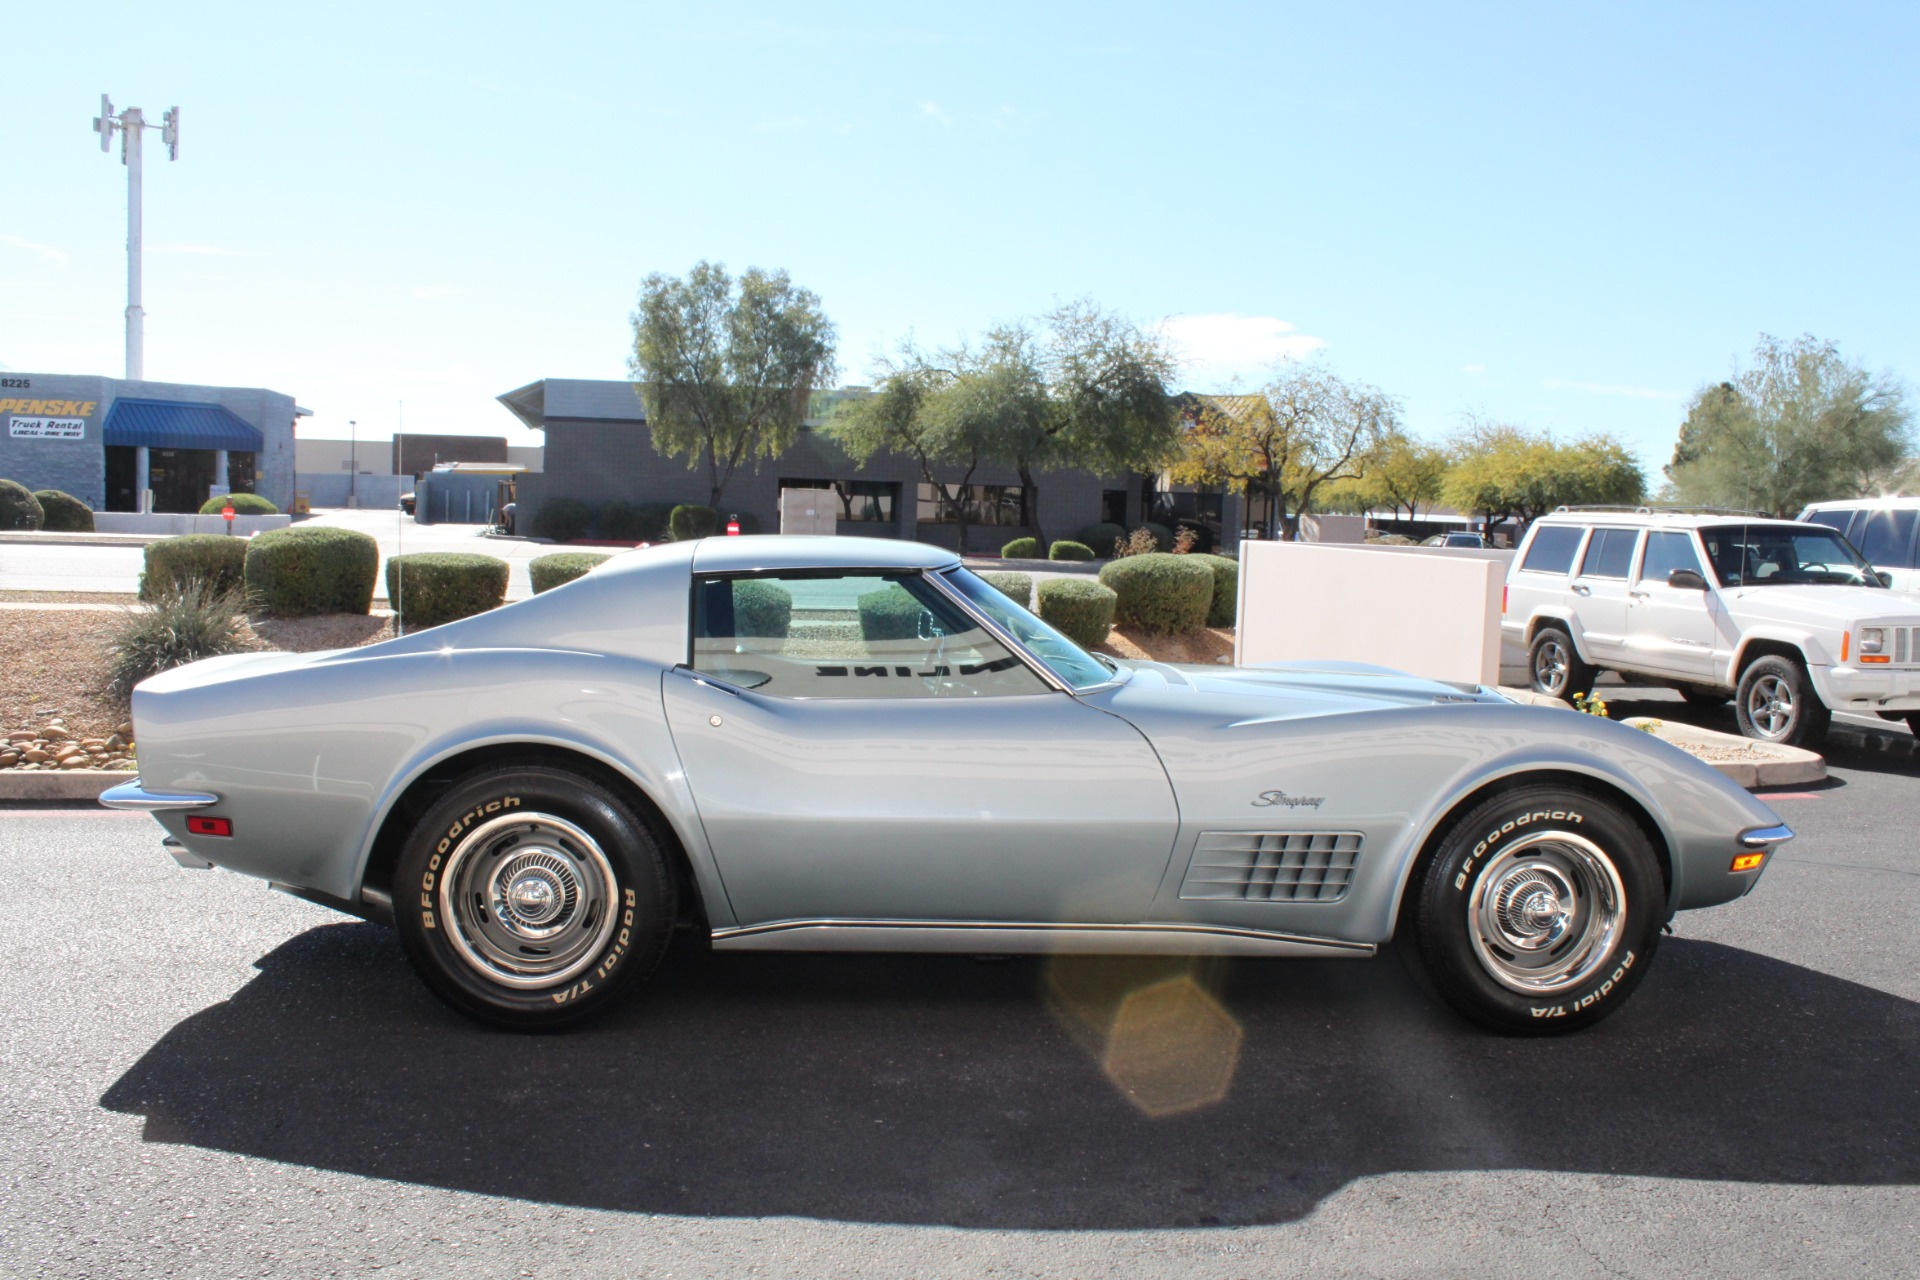 Used-1971-Chevrolet-Corvette-454-LS5-Big-Block-Mercedes-Benz